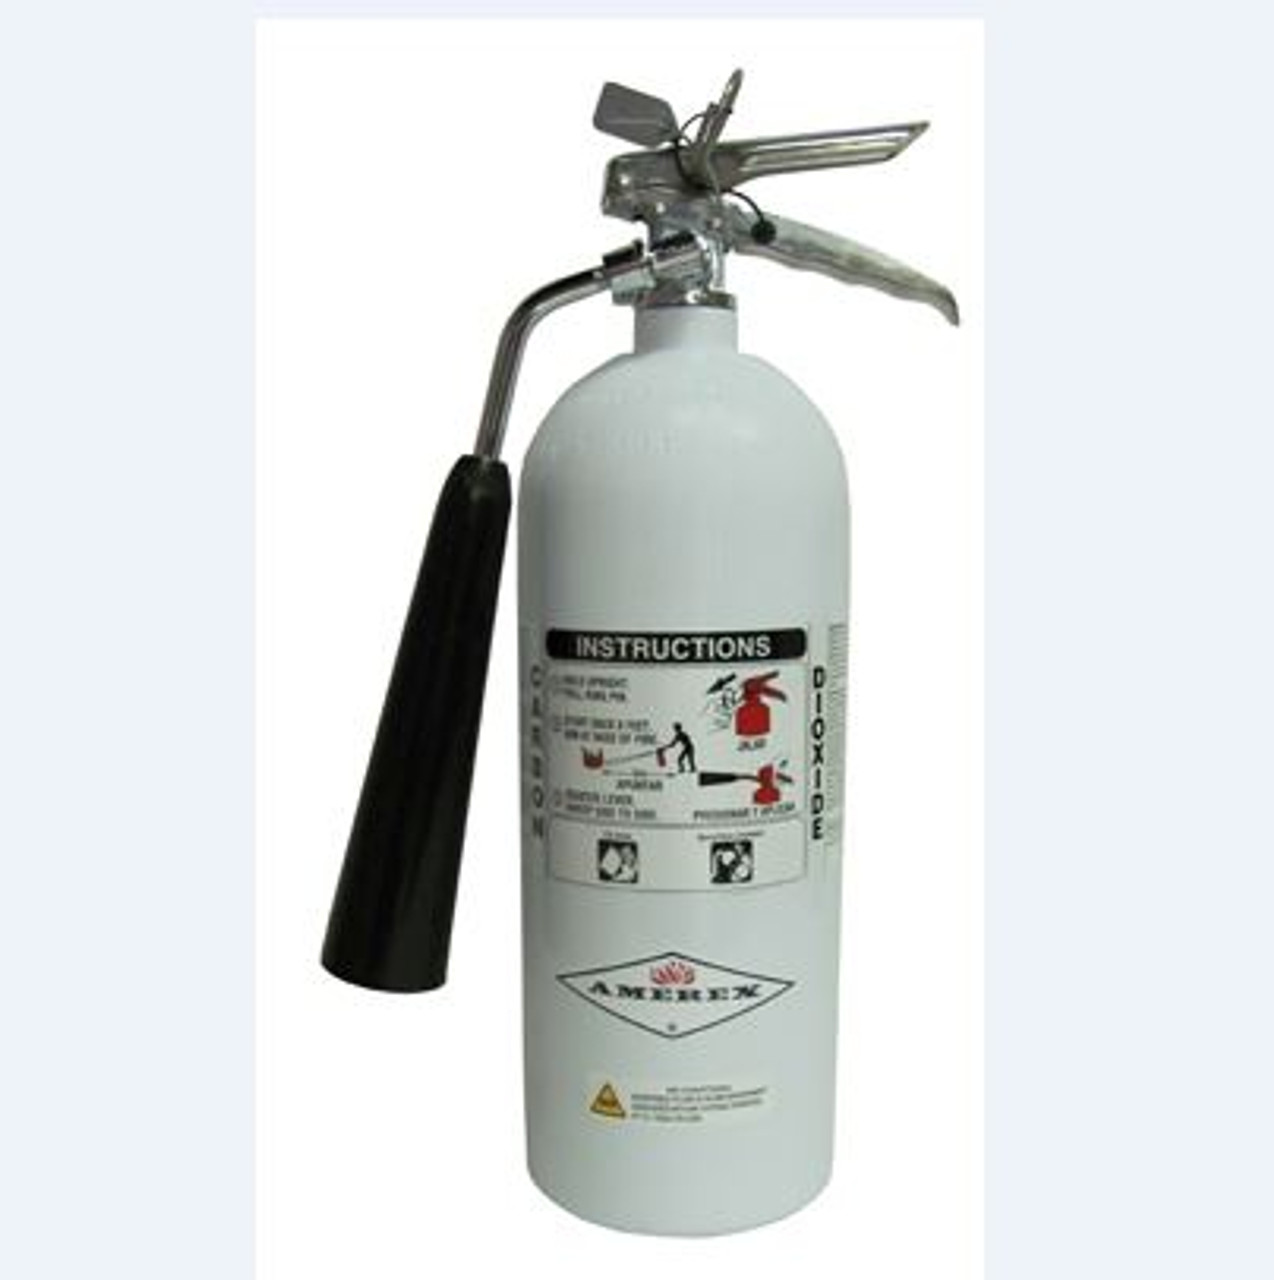 Amerex 322NM - 5 lb Carbon Dioxide (Co2) Fire Extinguisher - Nonmagnetic